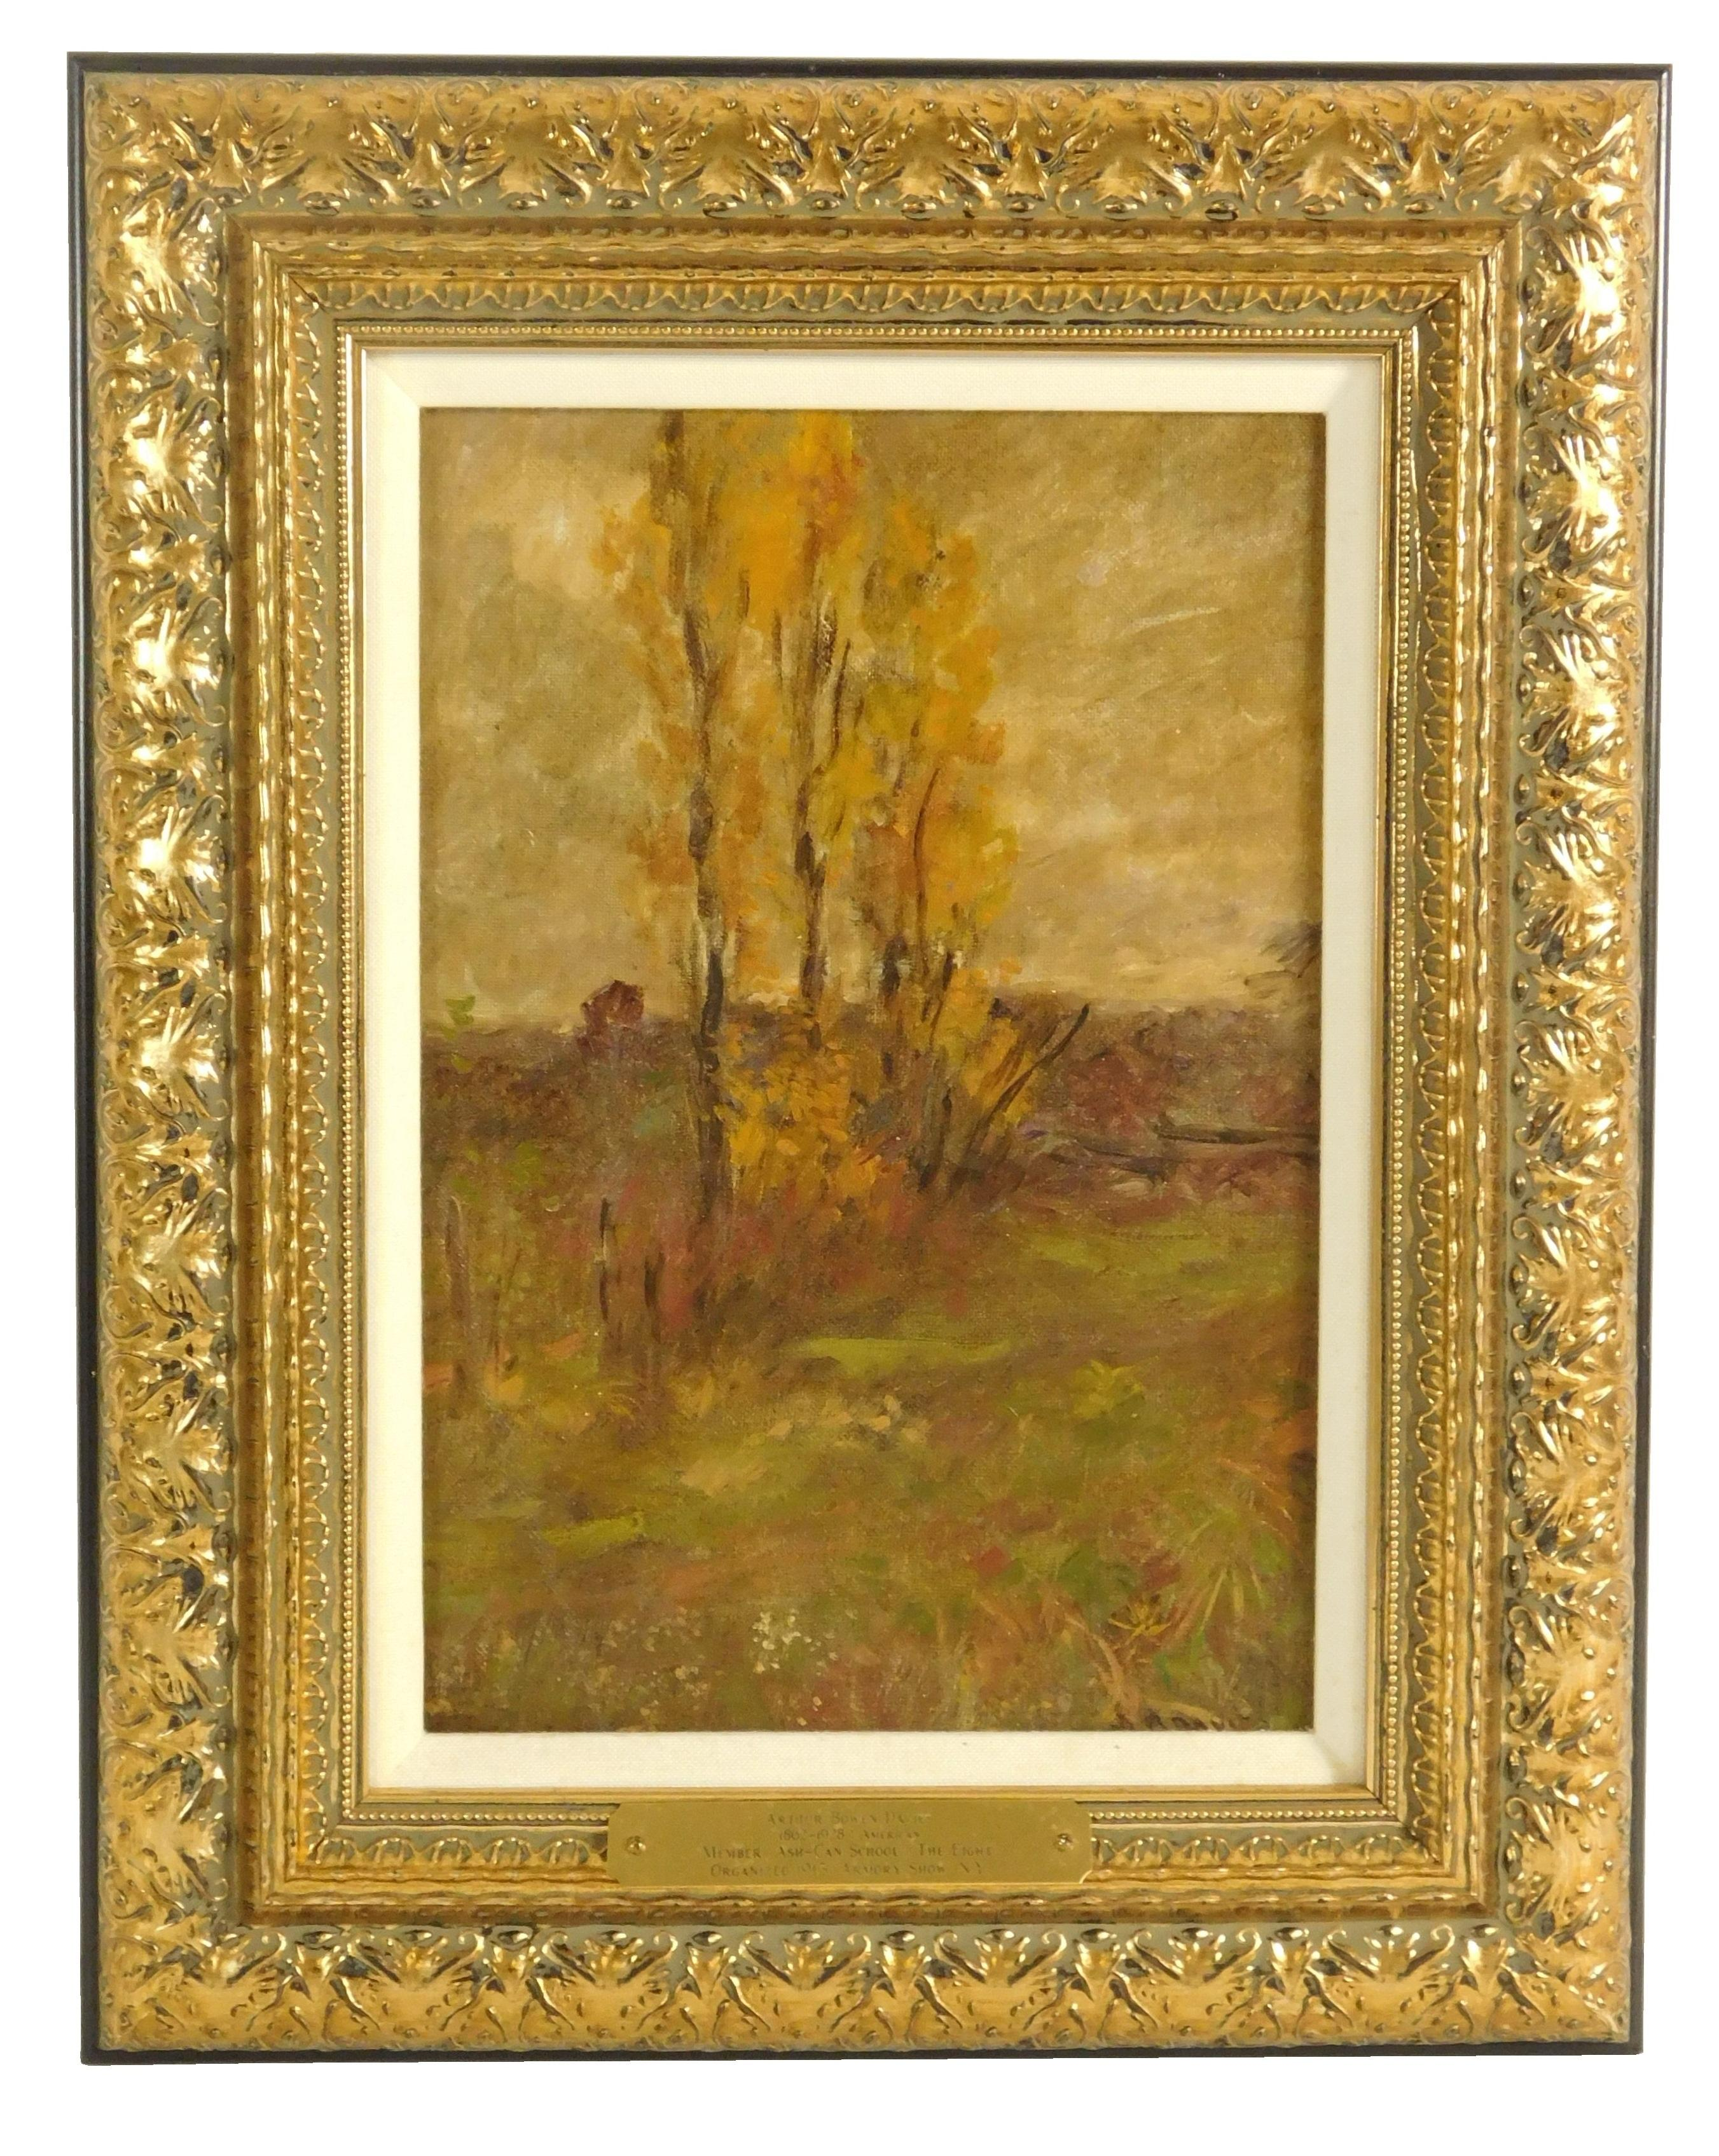 Arthur B. Davies (American, 1862-1928), oil on canvas over board, depicts fall landscape with group of trees with golden yellow leav...